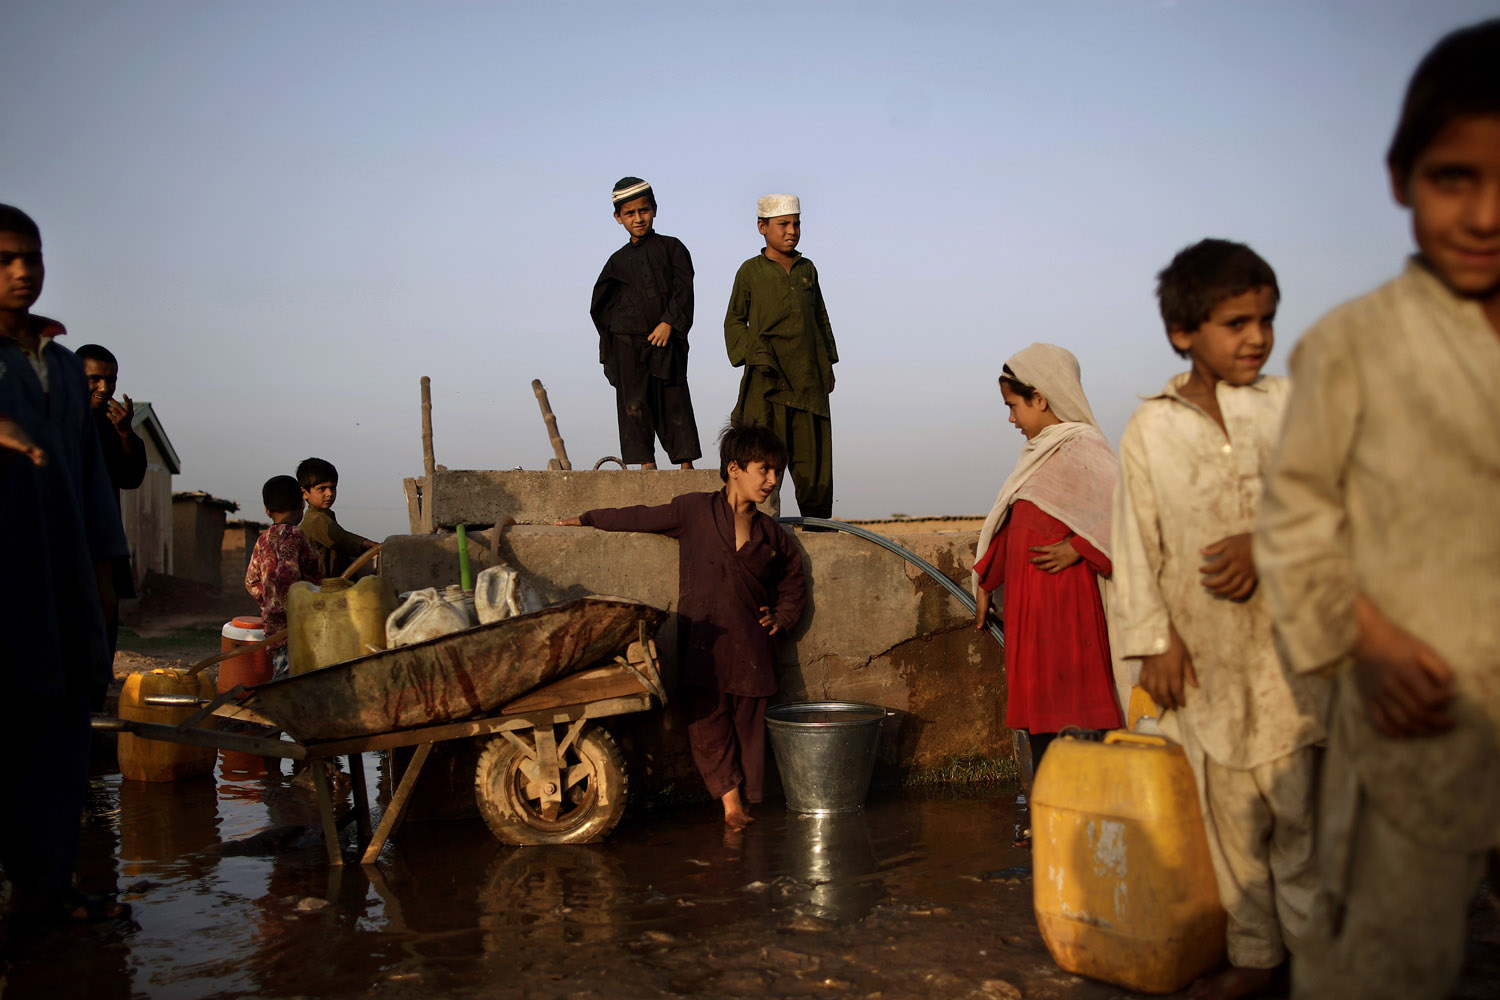 April 22, 2013. Afghan refugee children collect water from a water point on the outskirts of Islamabad.